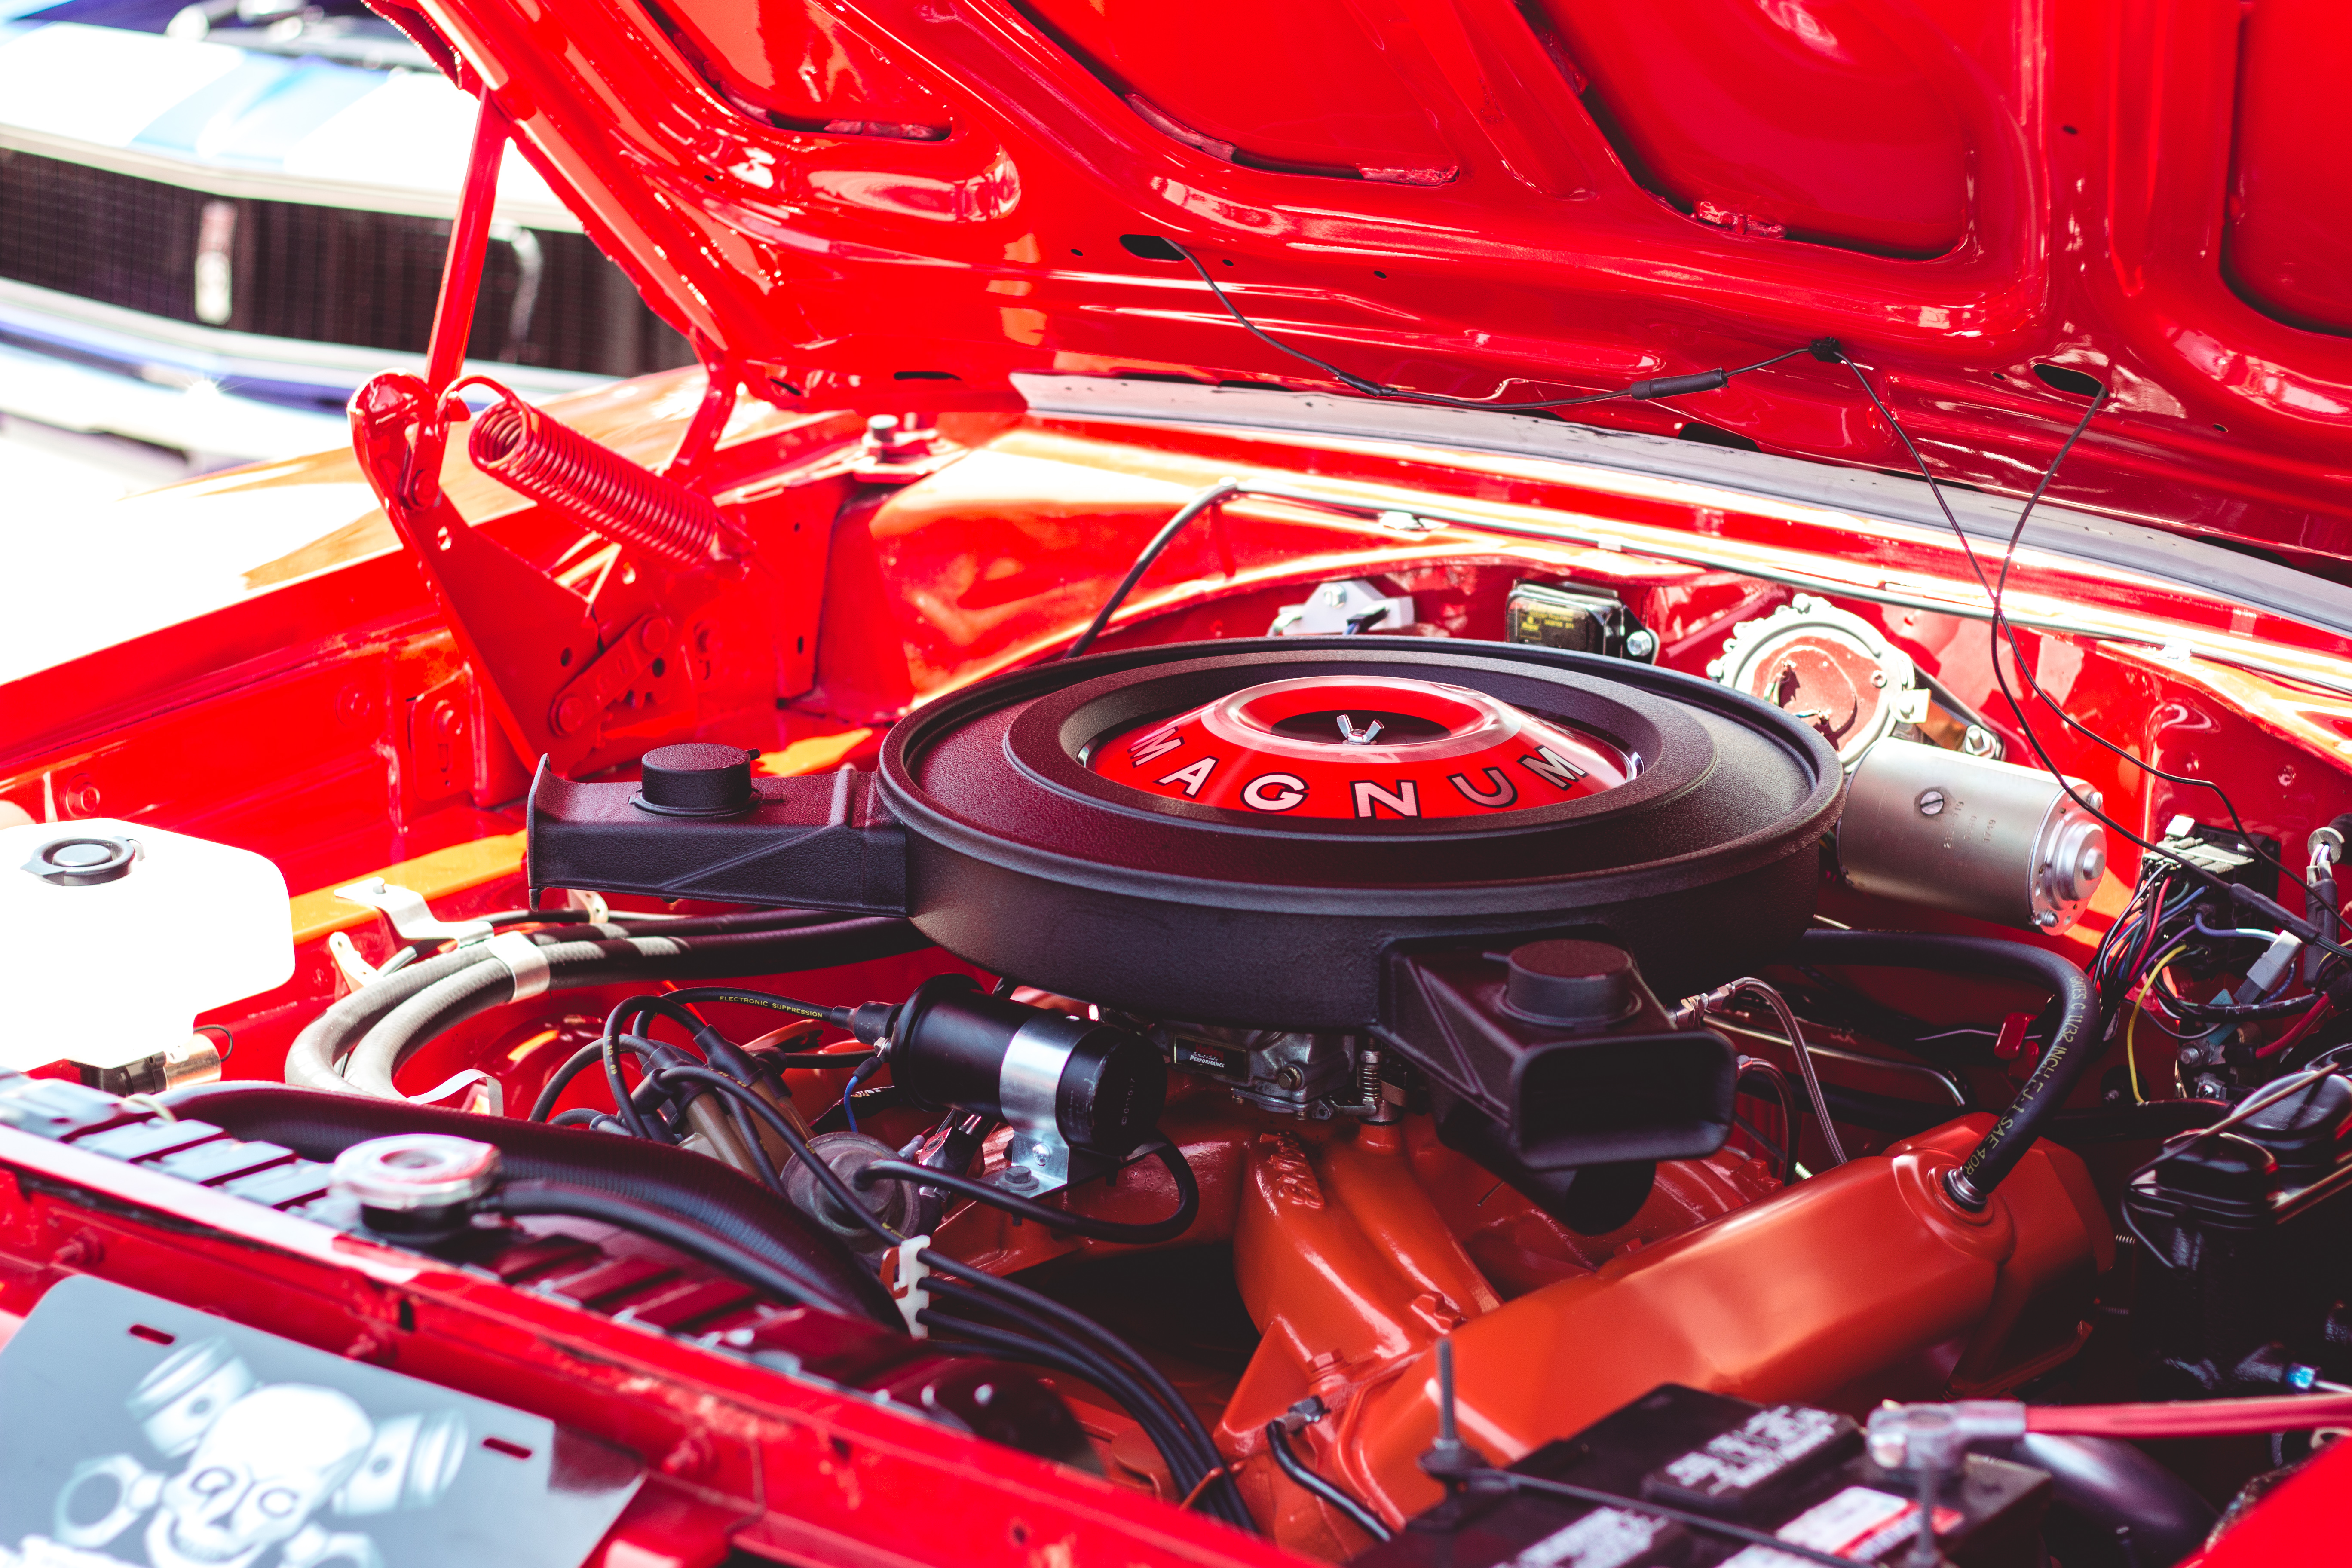 black and red vehicle engine bay